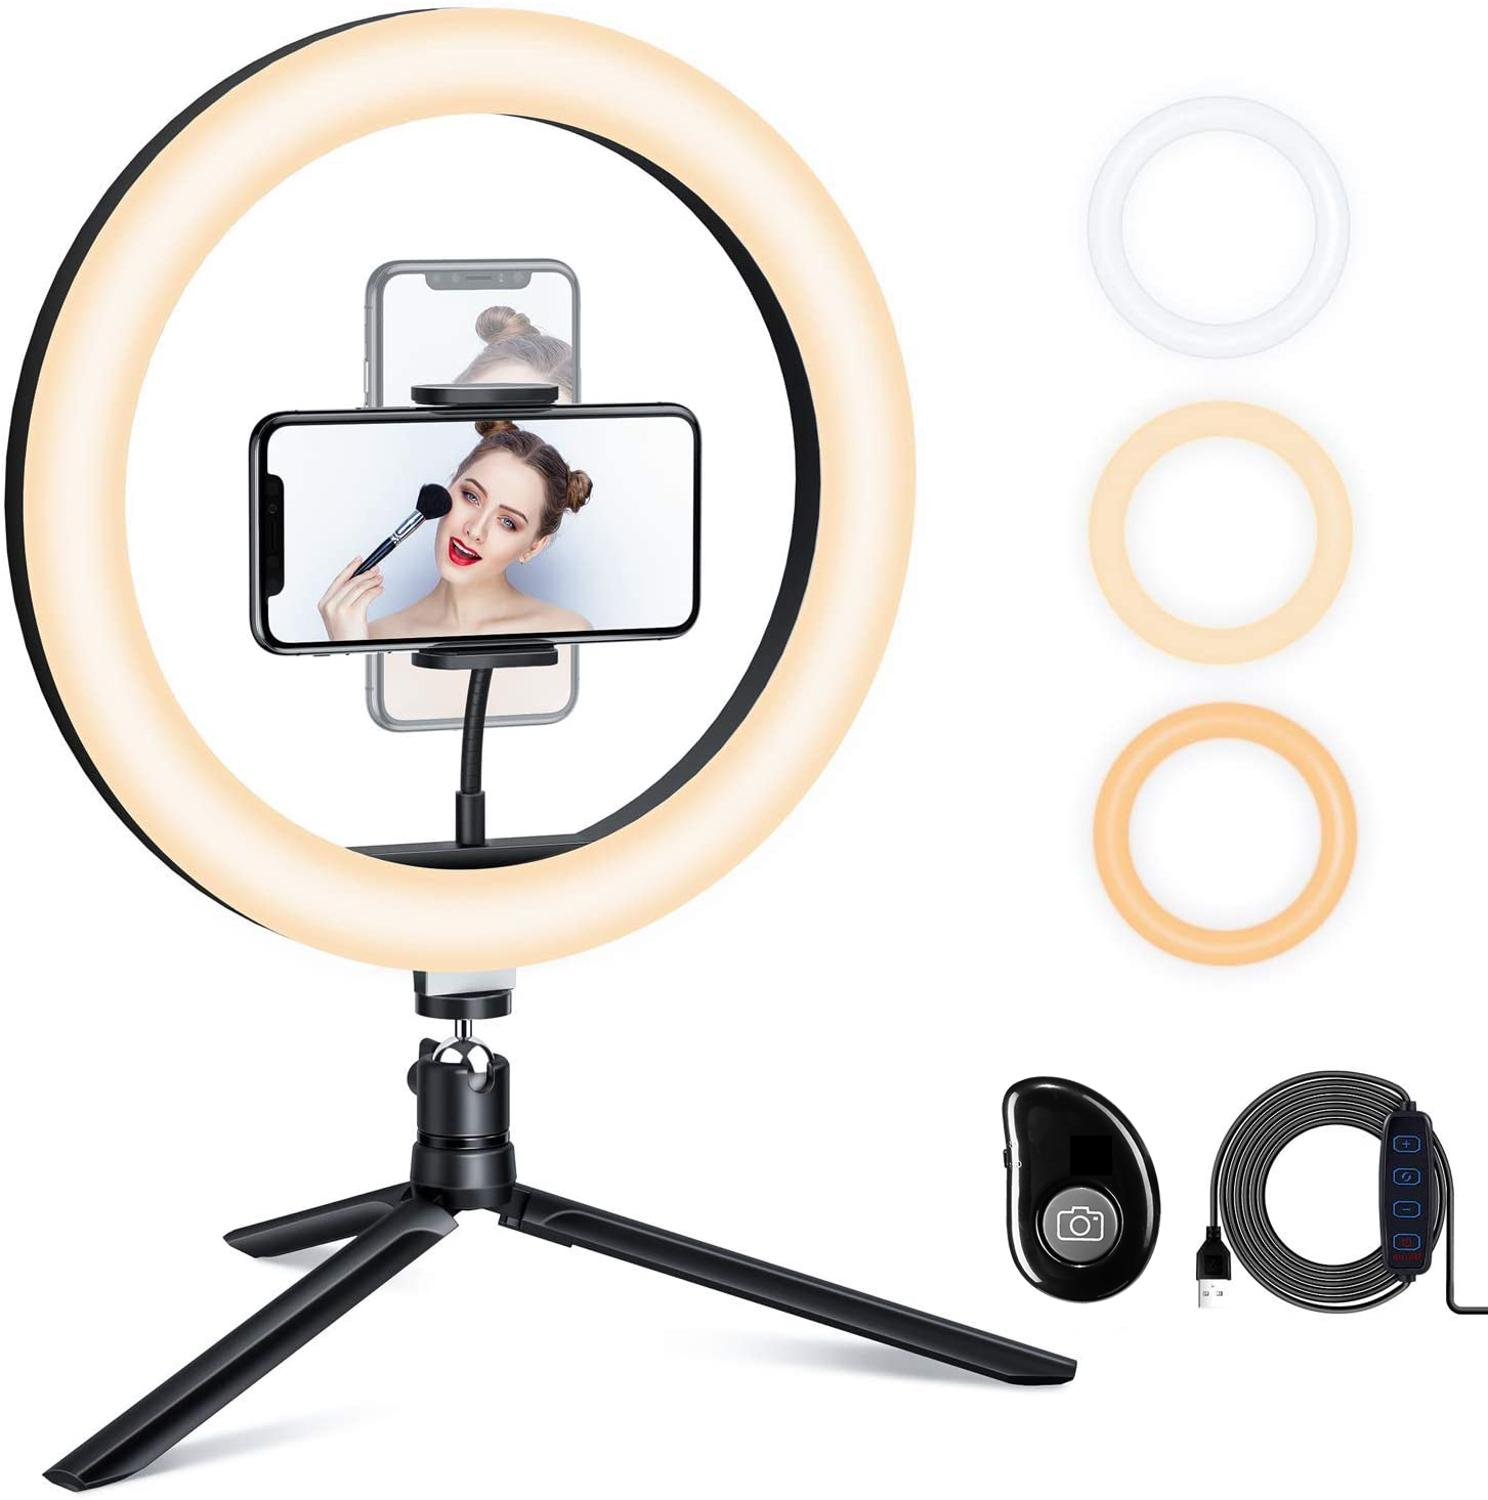 10inch Ring Light with Tripod Stand  amp  Adjustable brightness      Selfie Ring Light with Phone Holder  amp  Remote for YouTube Photography